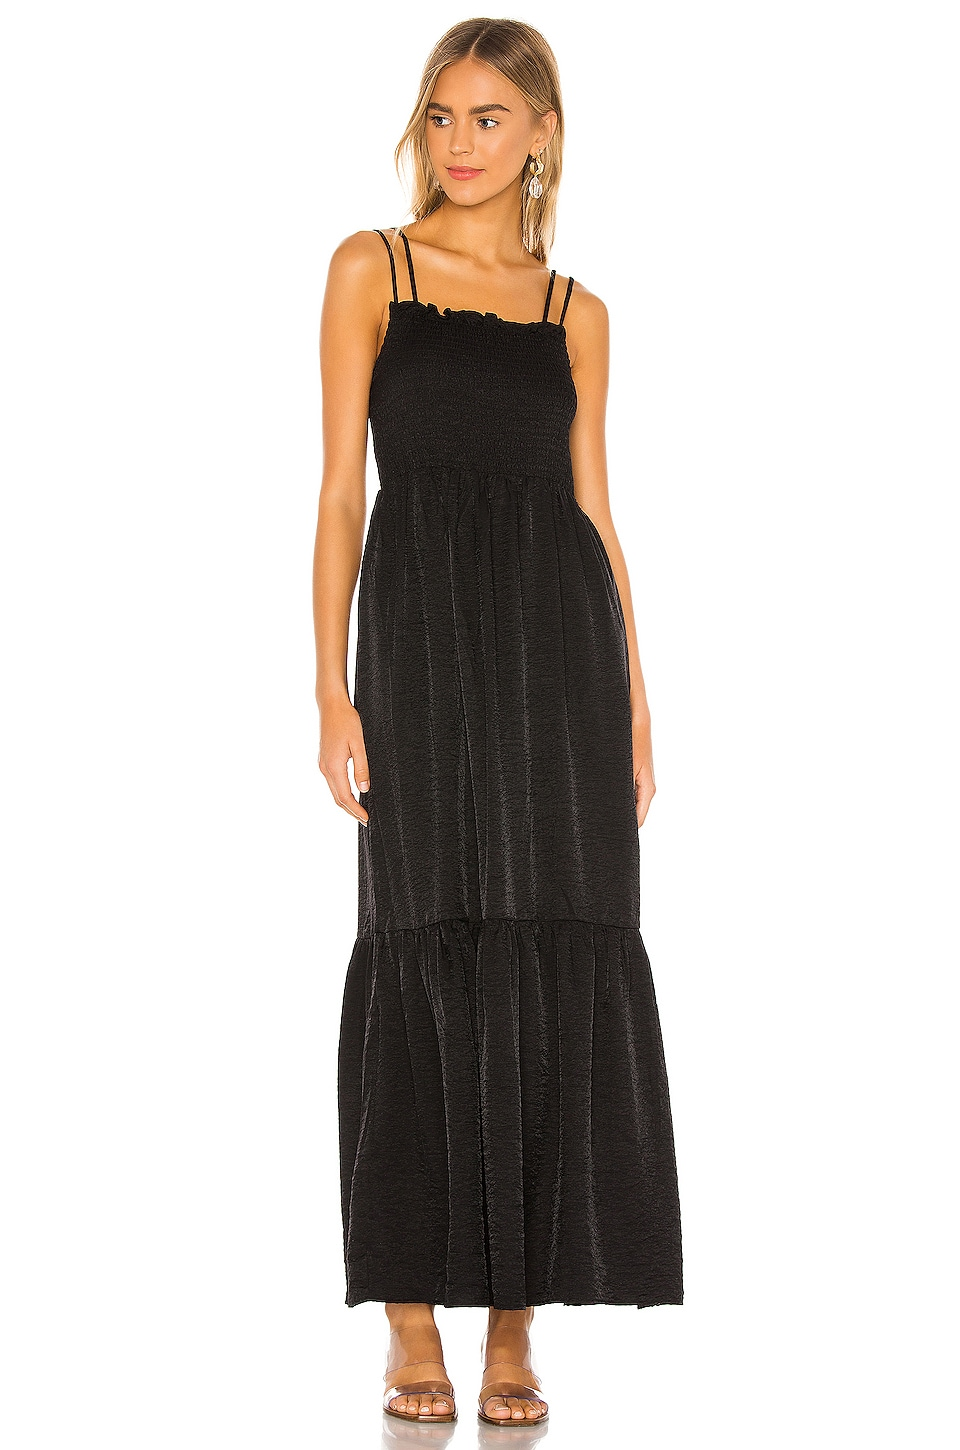 Blaque Maxi Dress             Line & Dot                                                                                                       CA$ 123.57 5